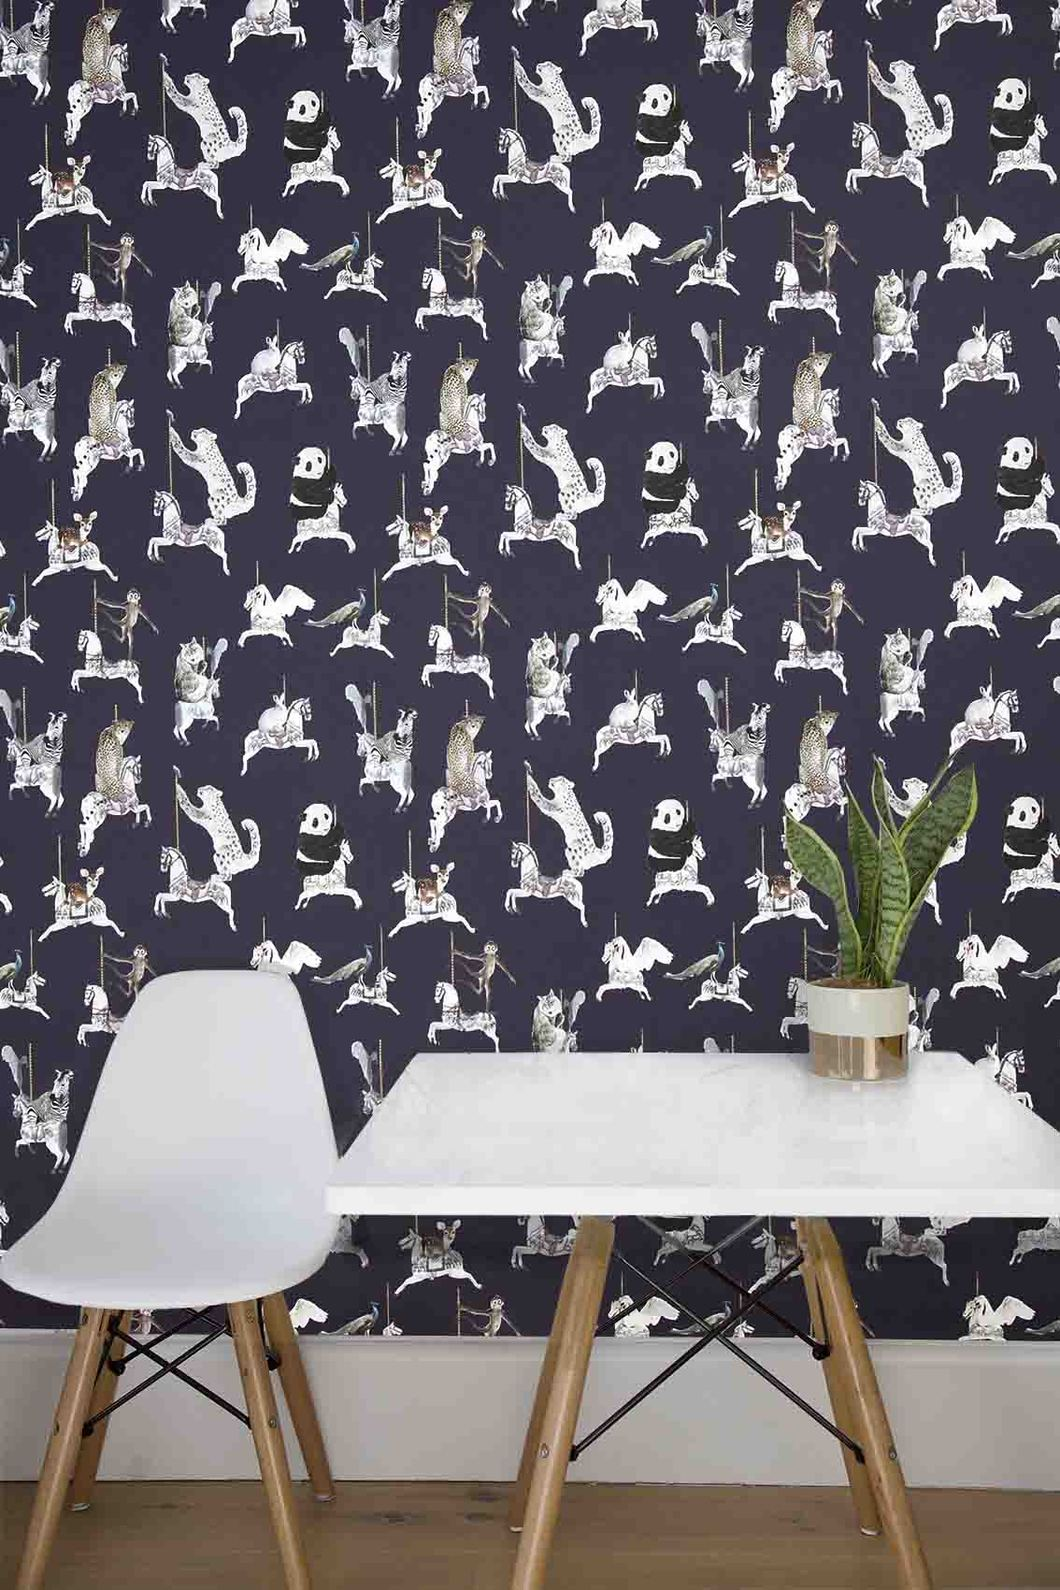 Wallpaper Sample In Navy With Snow Leopards, Pandas, - Animal Wallpaper For Walls , HD Wallpaper & Backgrounds